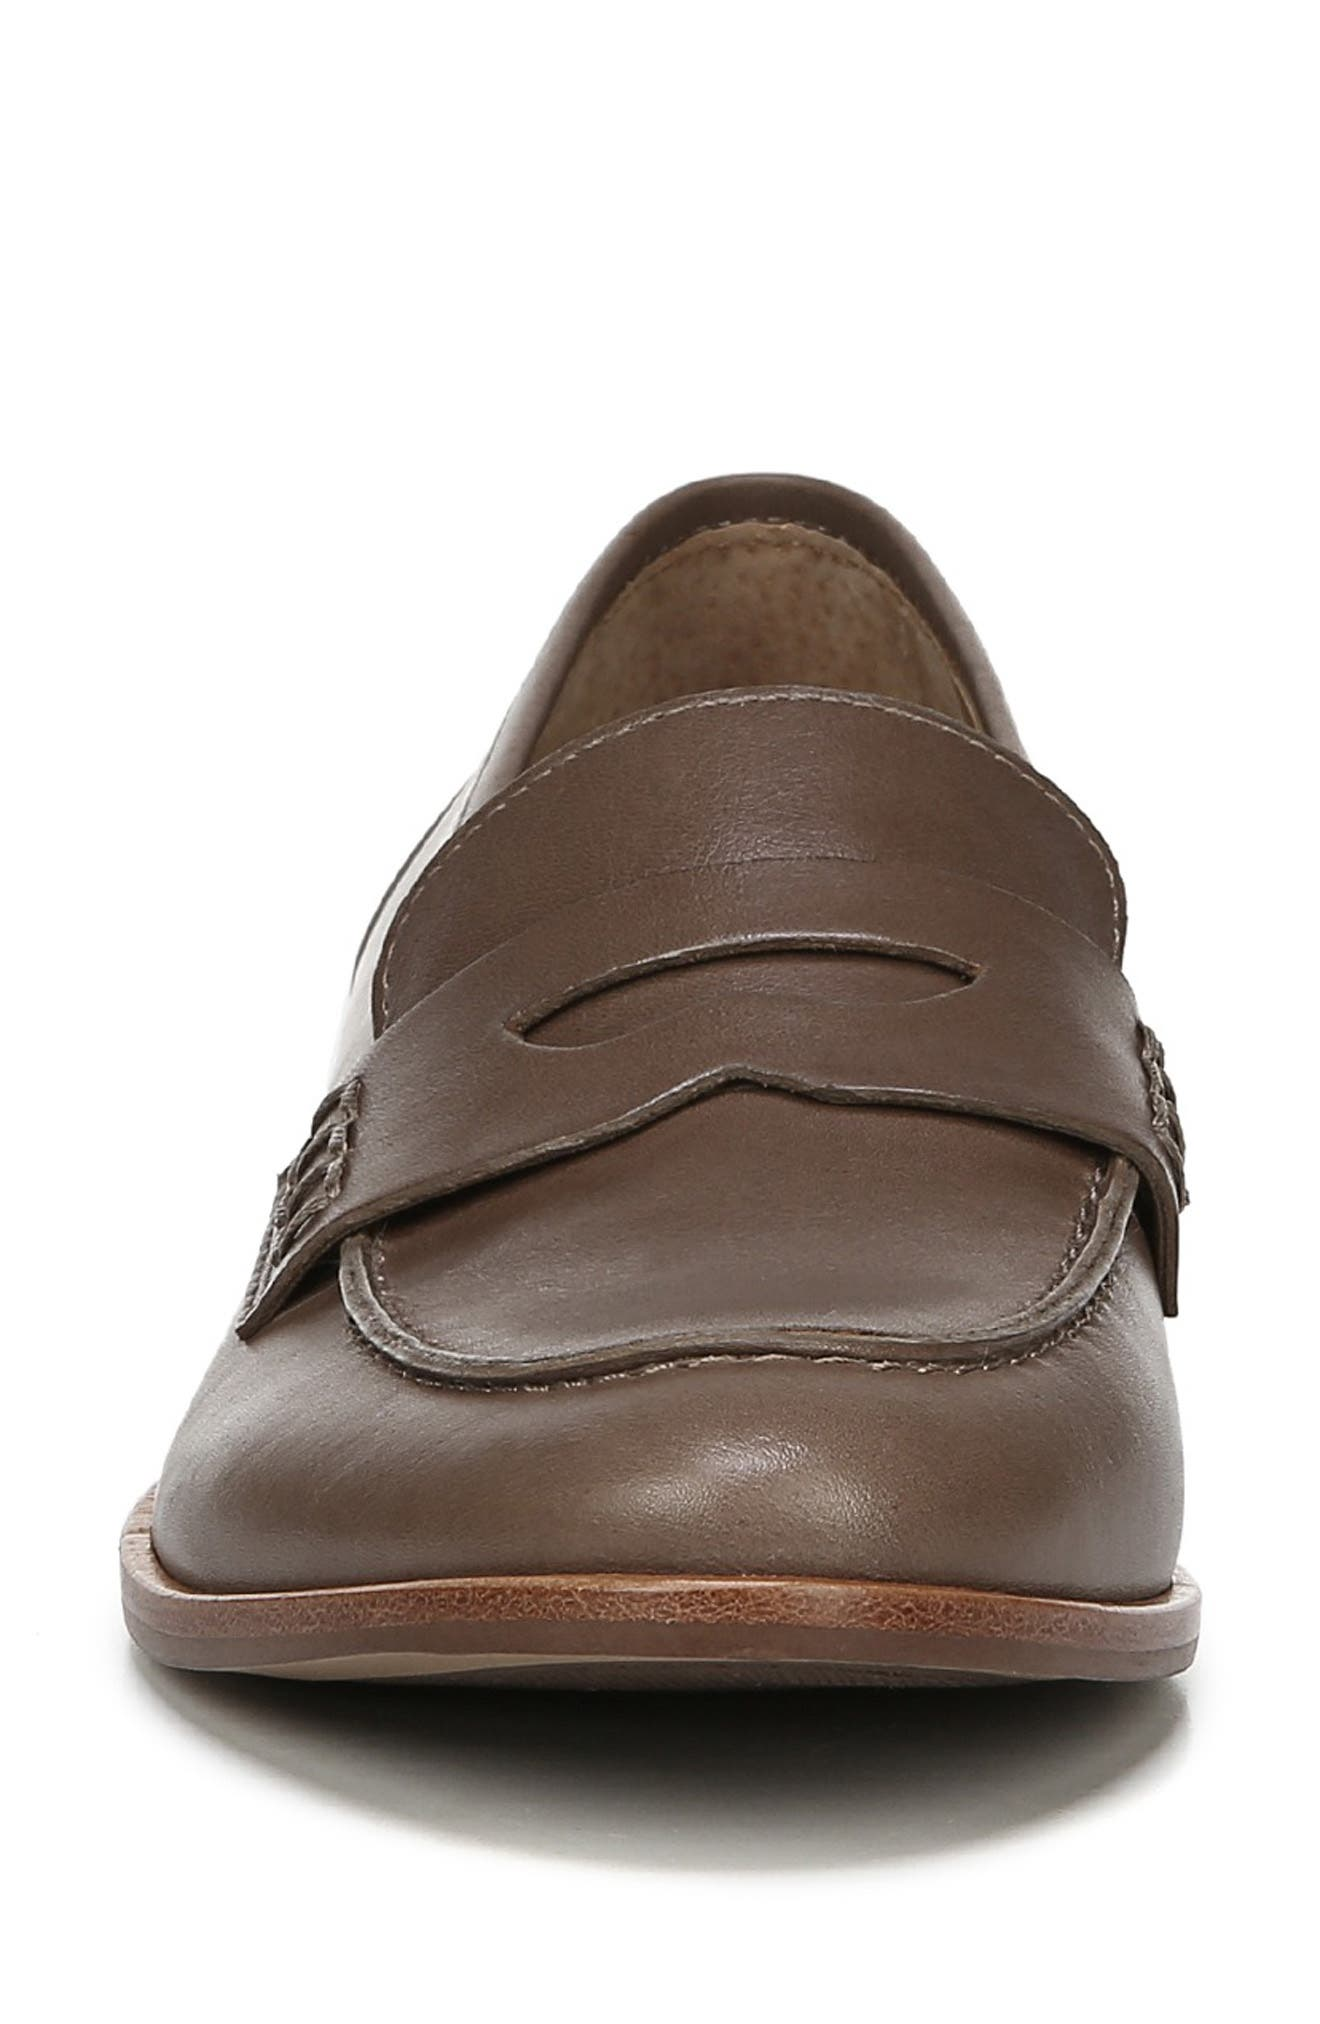 SARTO BY FRANCO SARTO,                             'Jolette' Penny Loafer,                             Alternate thumbnail 4, color,                             DARK PUTTY LEATHER